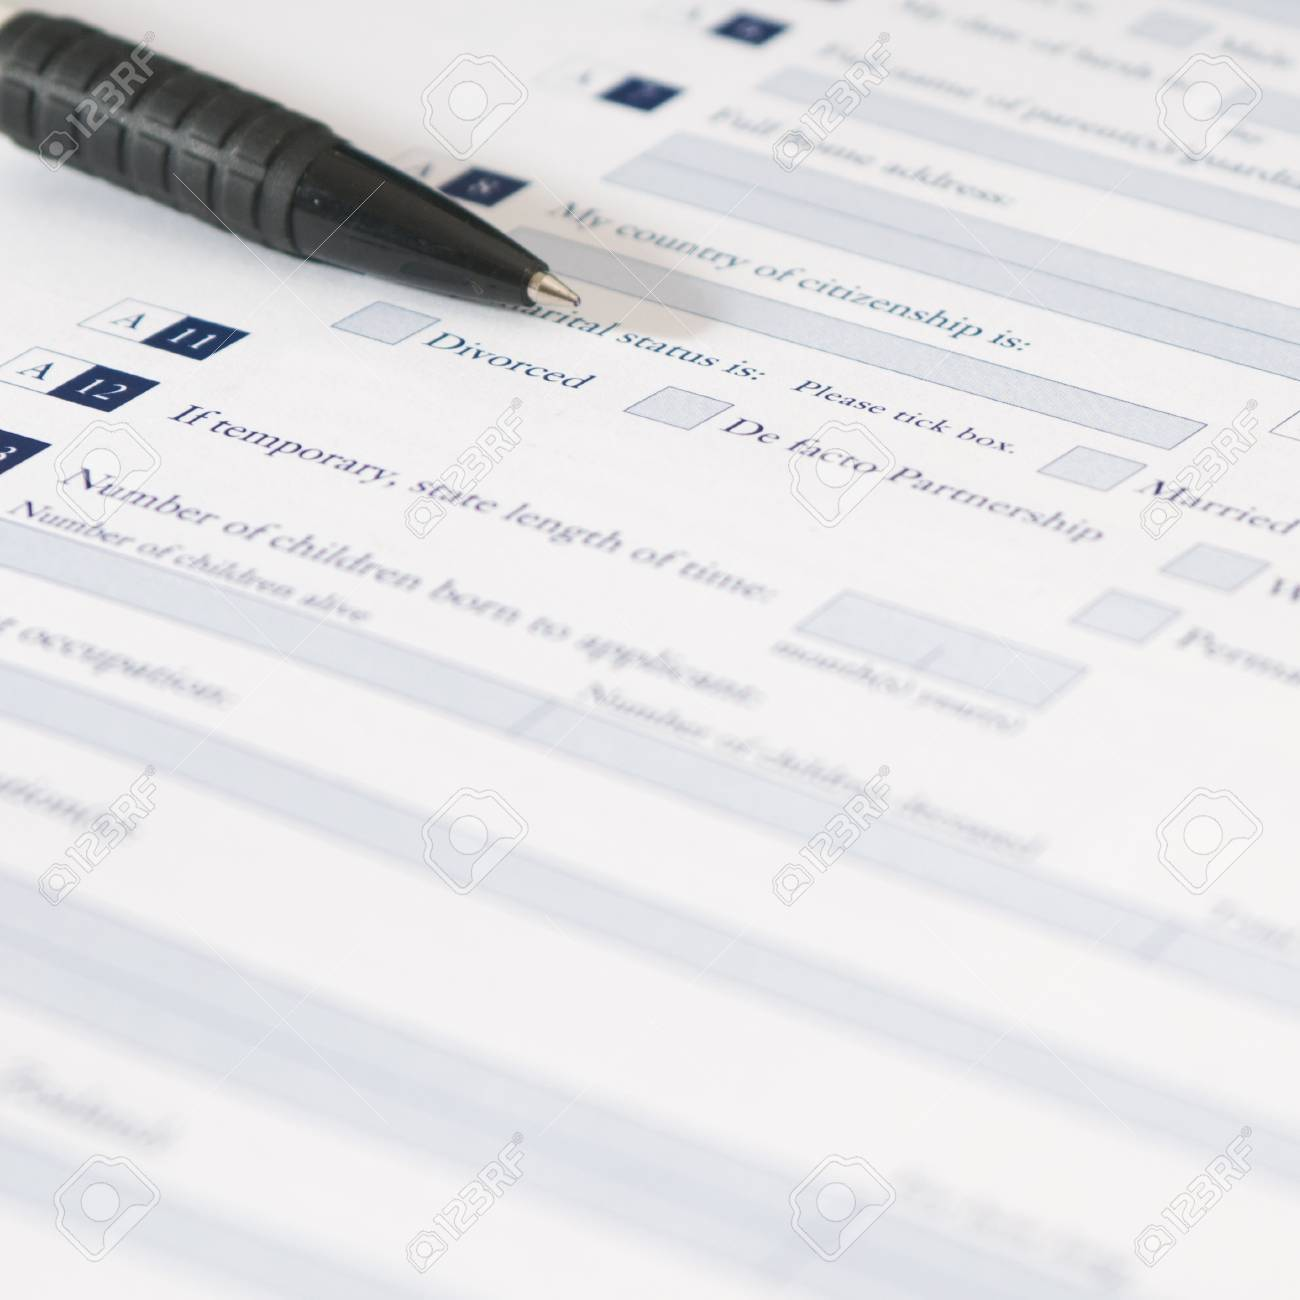 pen and application form of marital status that requires to fill pen and application form of marital status that requires to fill out his required information